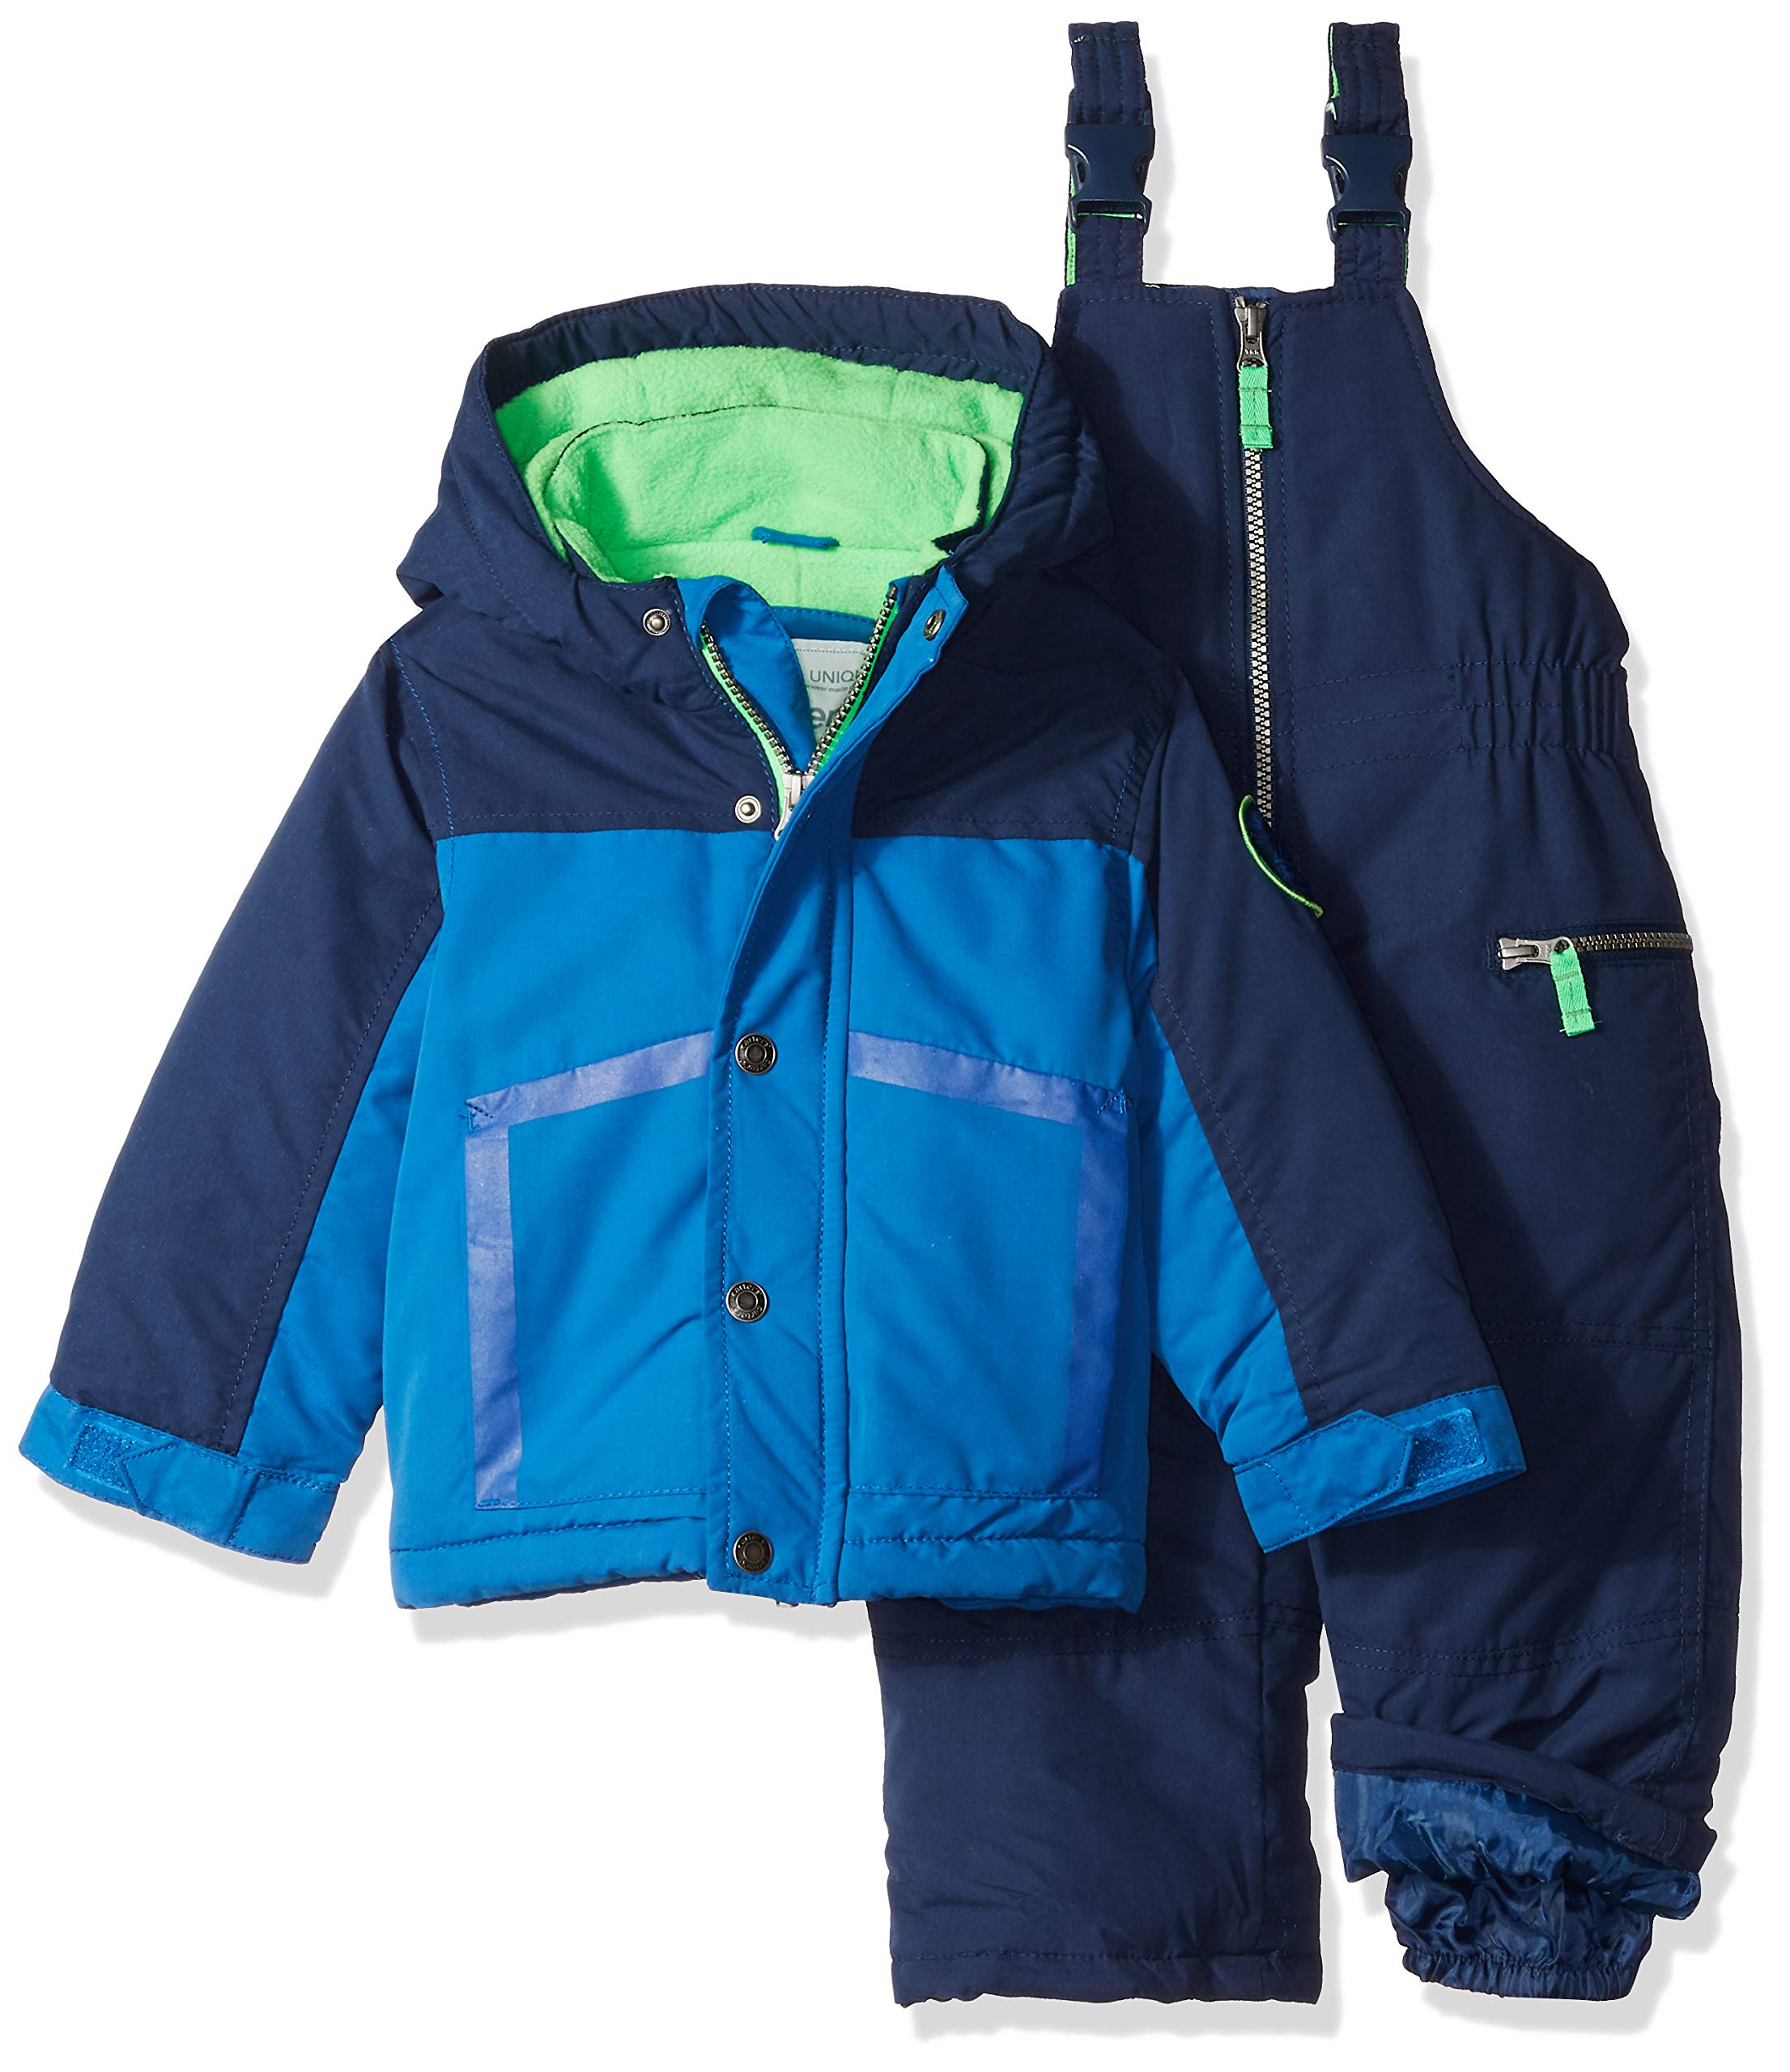 Carter's Boys' Toddler Heavyweight 2-Piece Skisuit Snowsuit, House Blue/Current Navy 3T